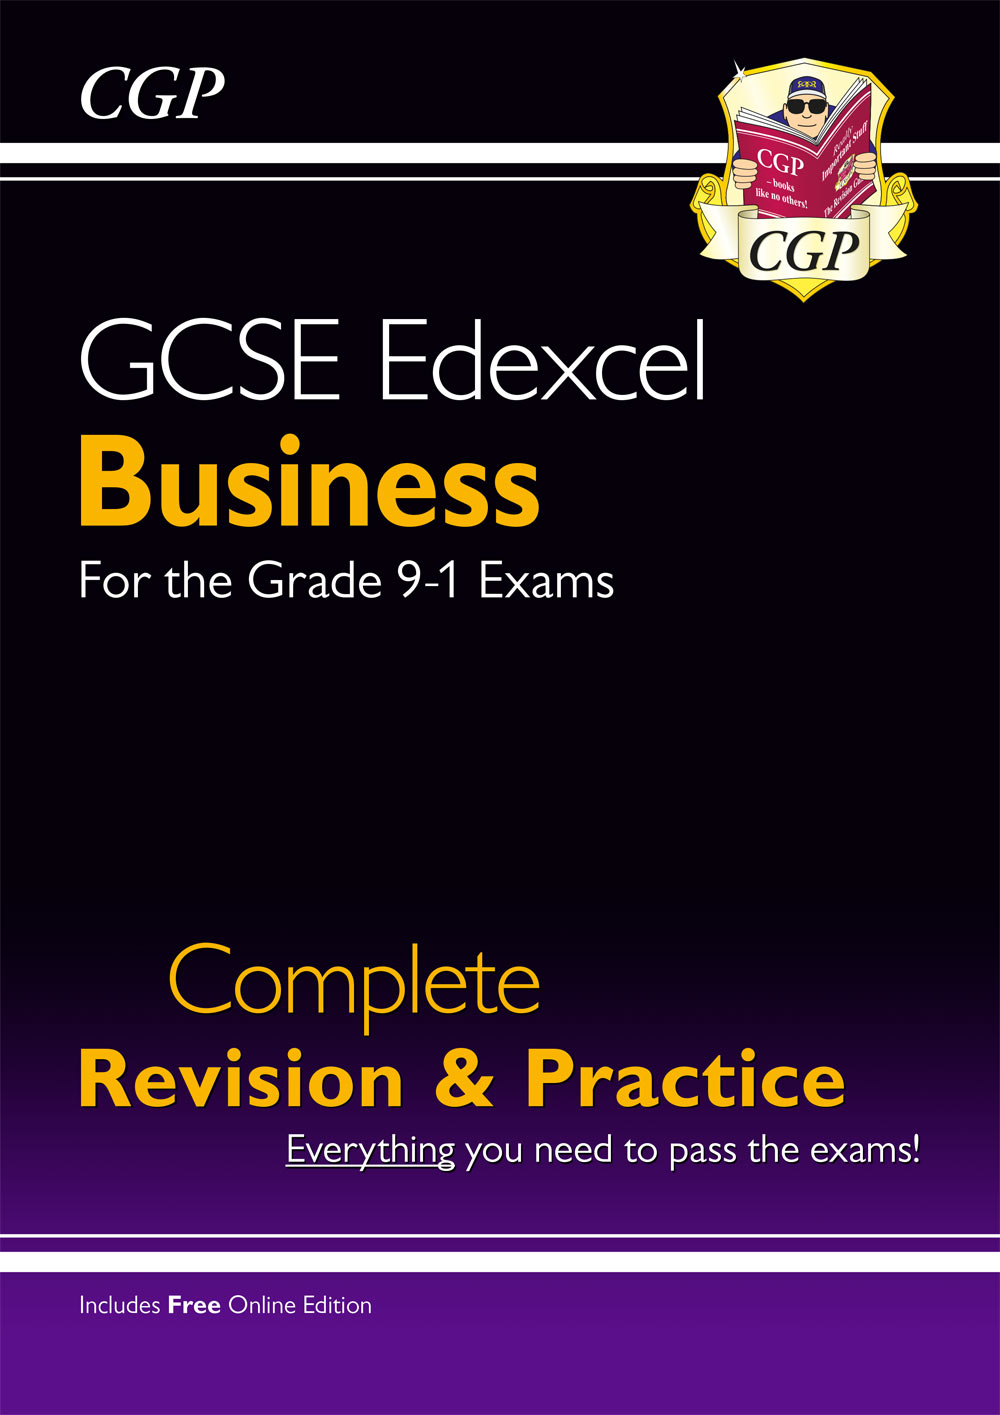 BUES41 - GCSE Business Edexcel Complete Revision and Practice - Grade 9-1 Course (with Online Editio